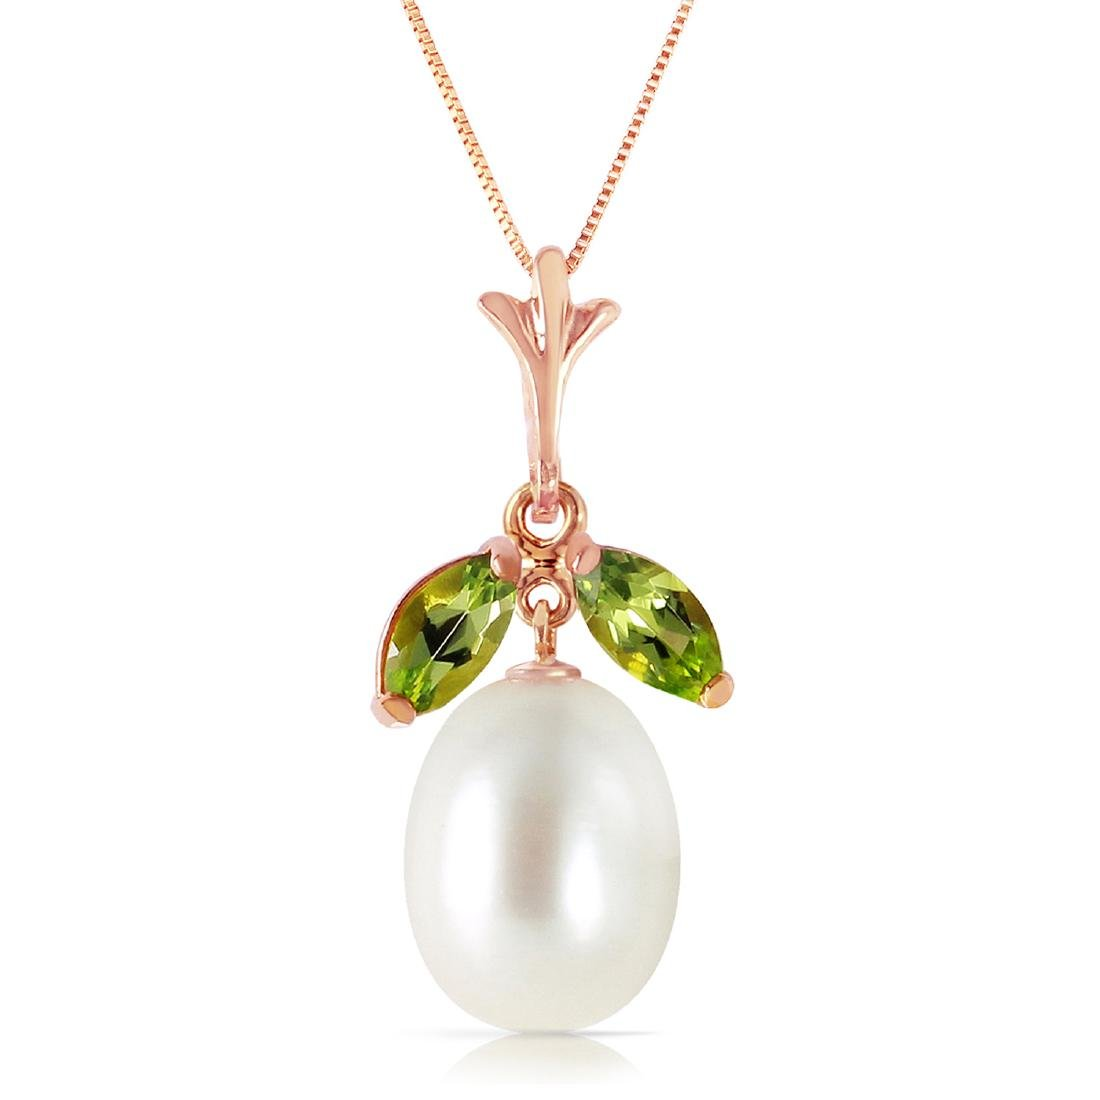 Genuine 4.5 ctw Pearl & Peridot Necklace Jewelry 14KT